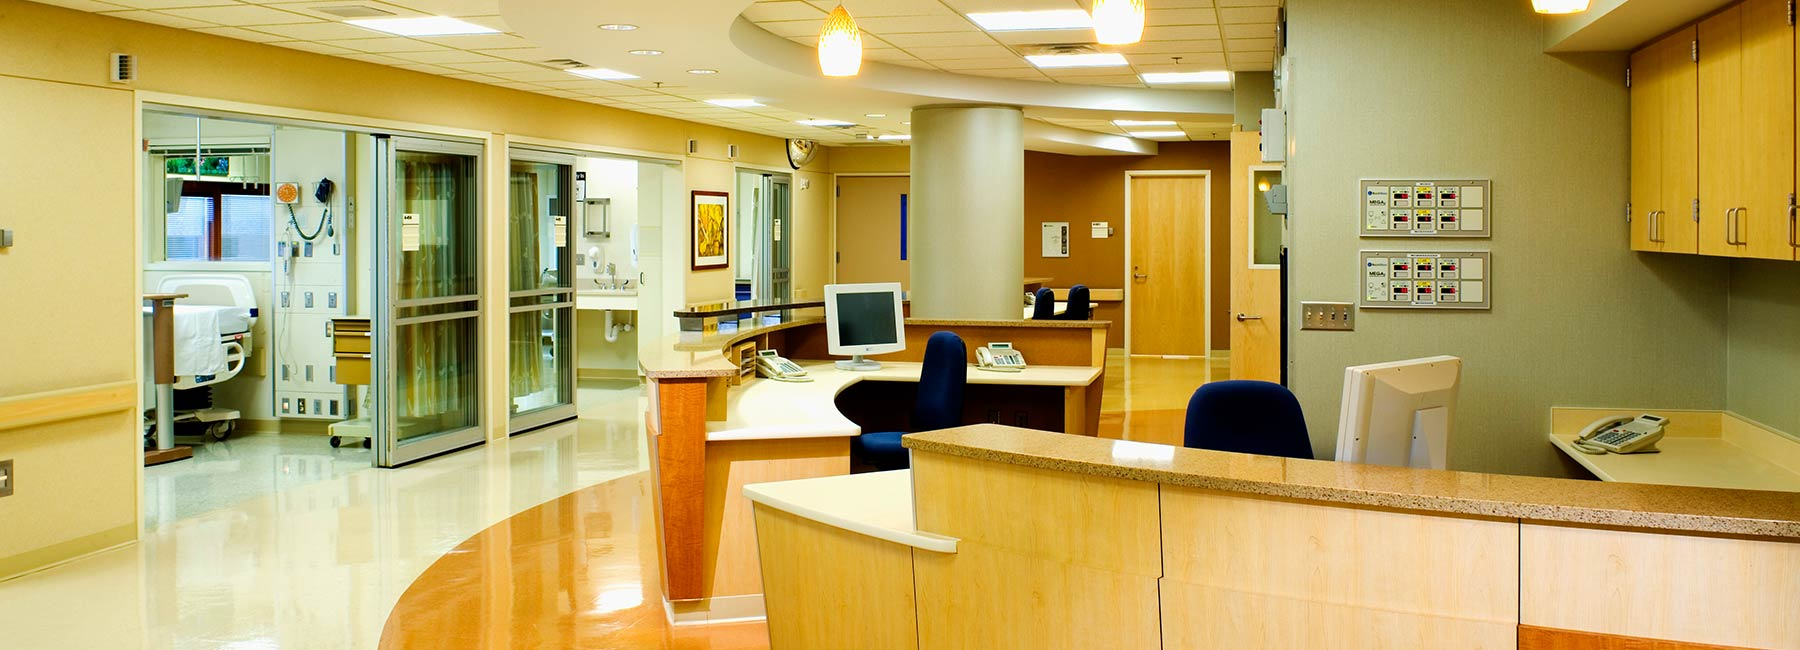 Mechanical & Electrical Engineering, Information & Communications Technology Services - U of M Health Center